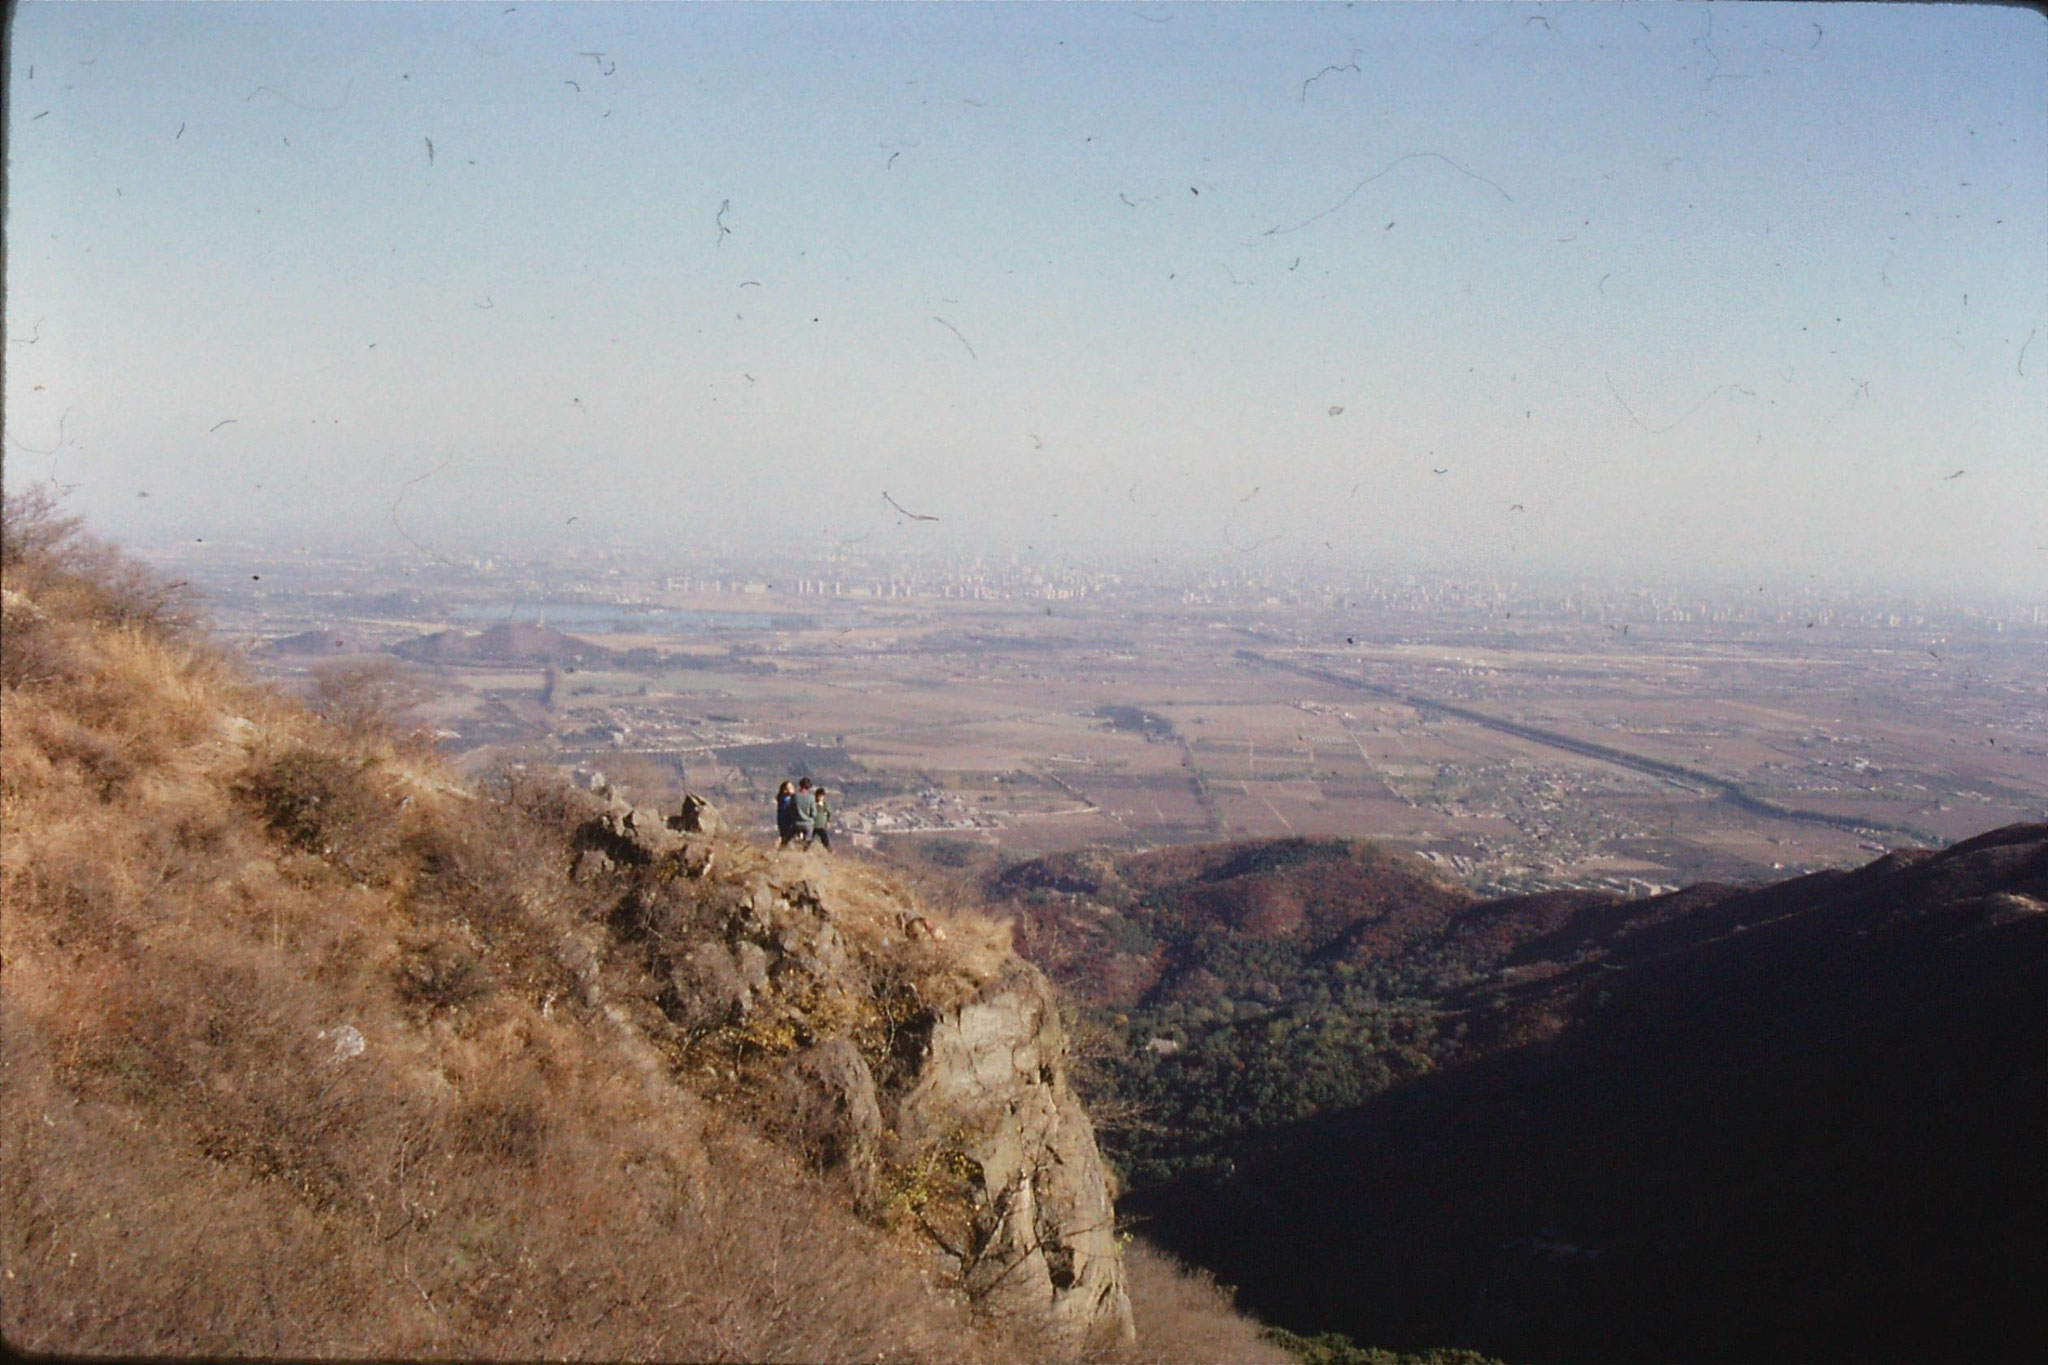 6/11/1988: 33: outing to Xiangshan